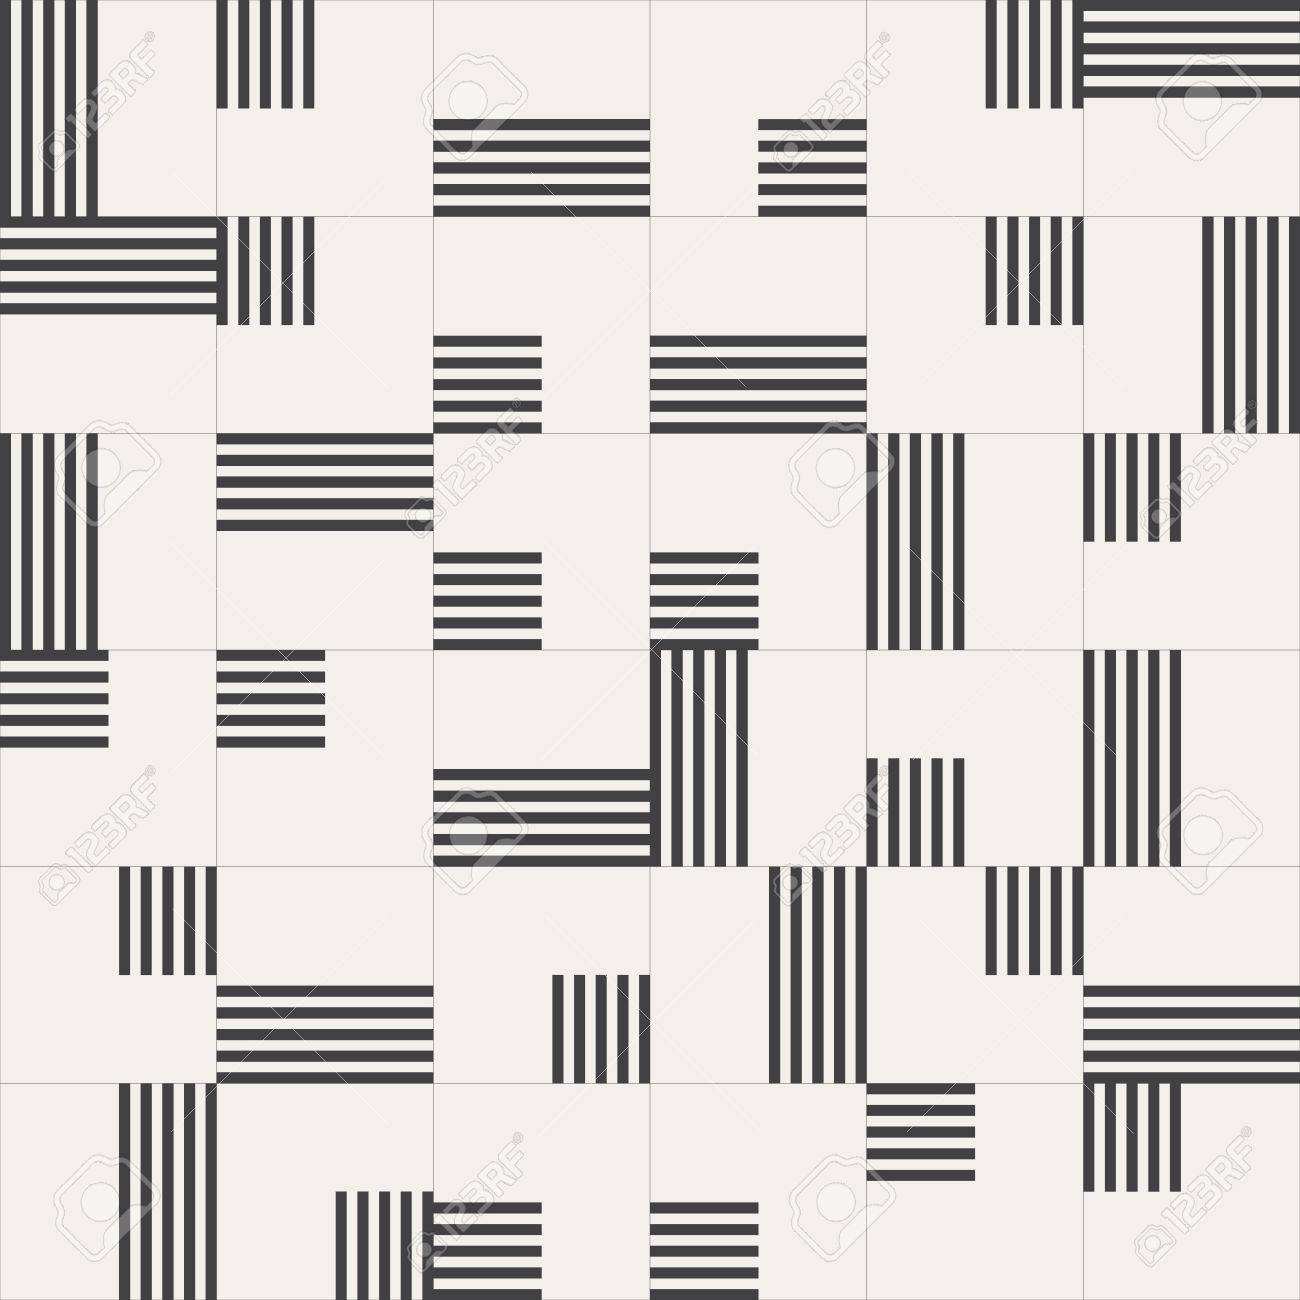 Vector seamless background. Modern stylish texture. Repeating geometric shapes. Contemporary graphic design. - 40707139